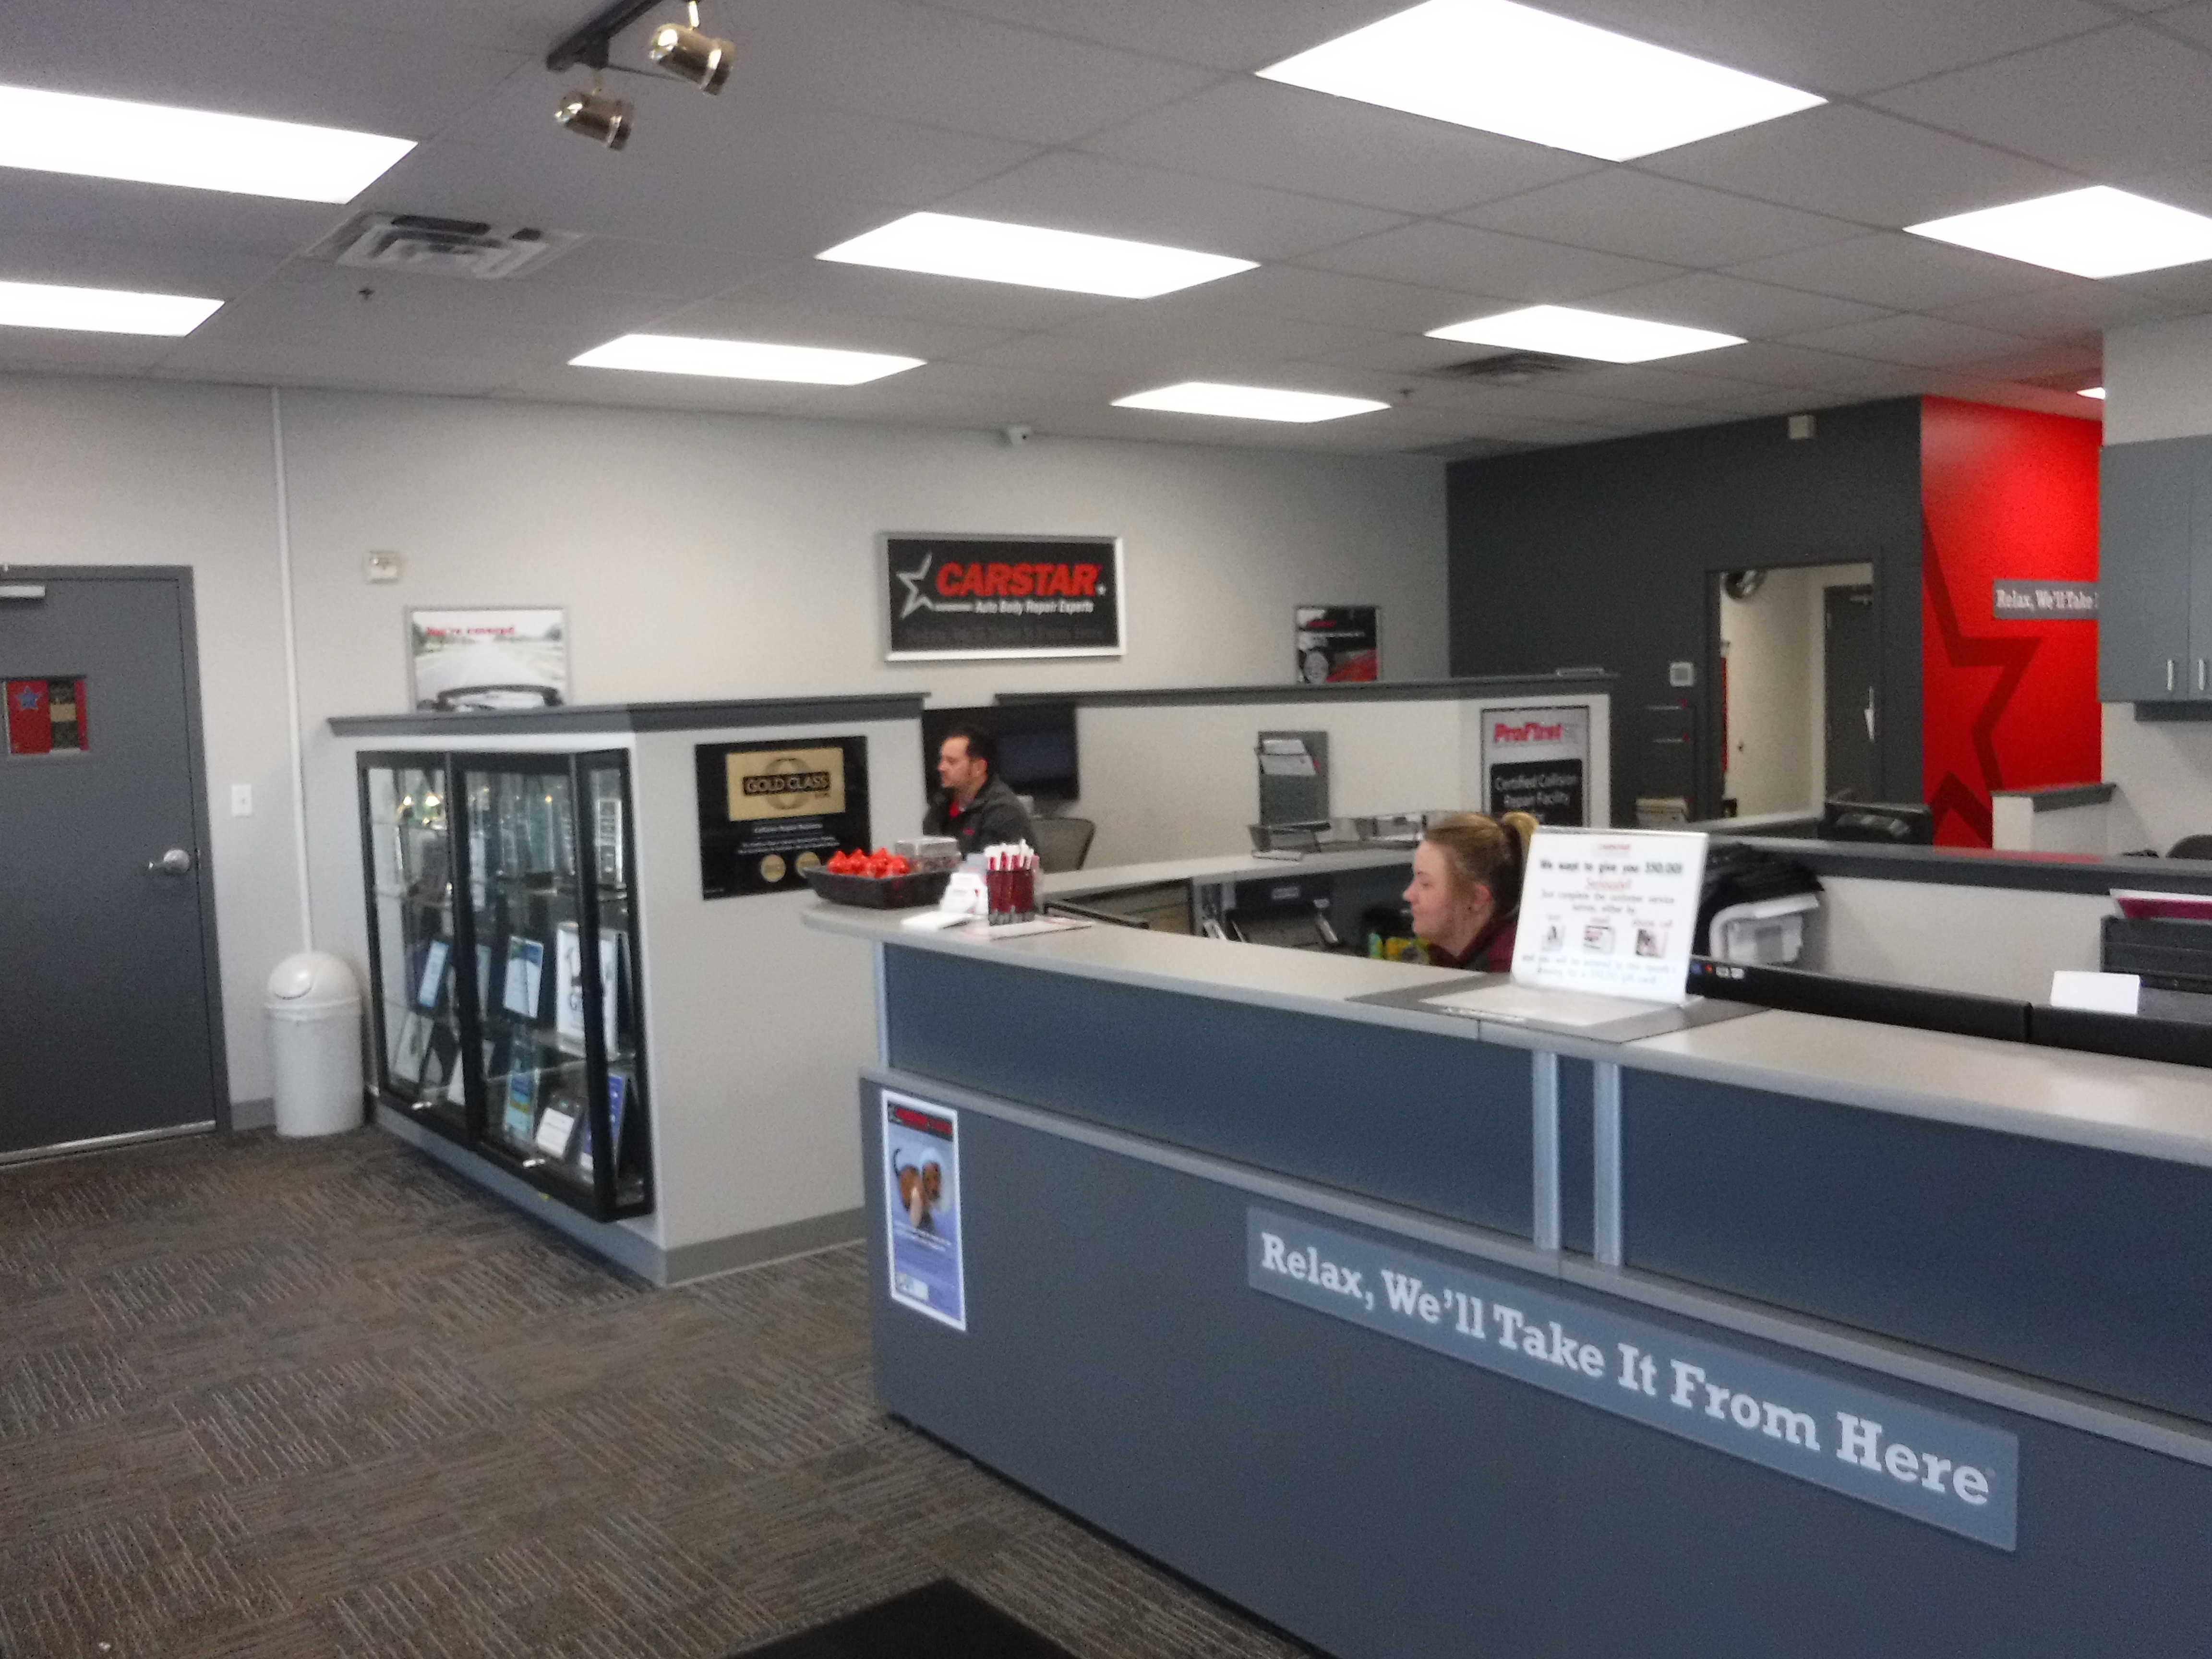 Jordan Road CARSTAR Collision Repair : Front Office